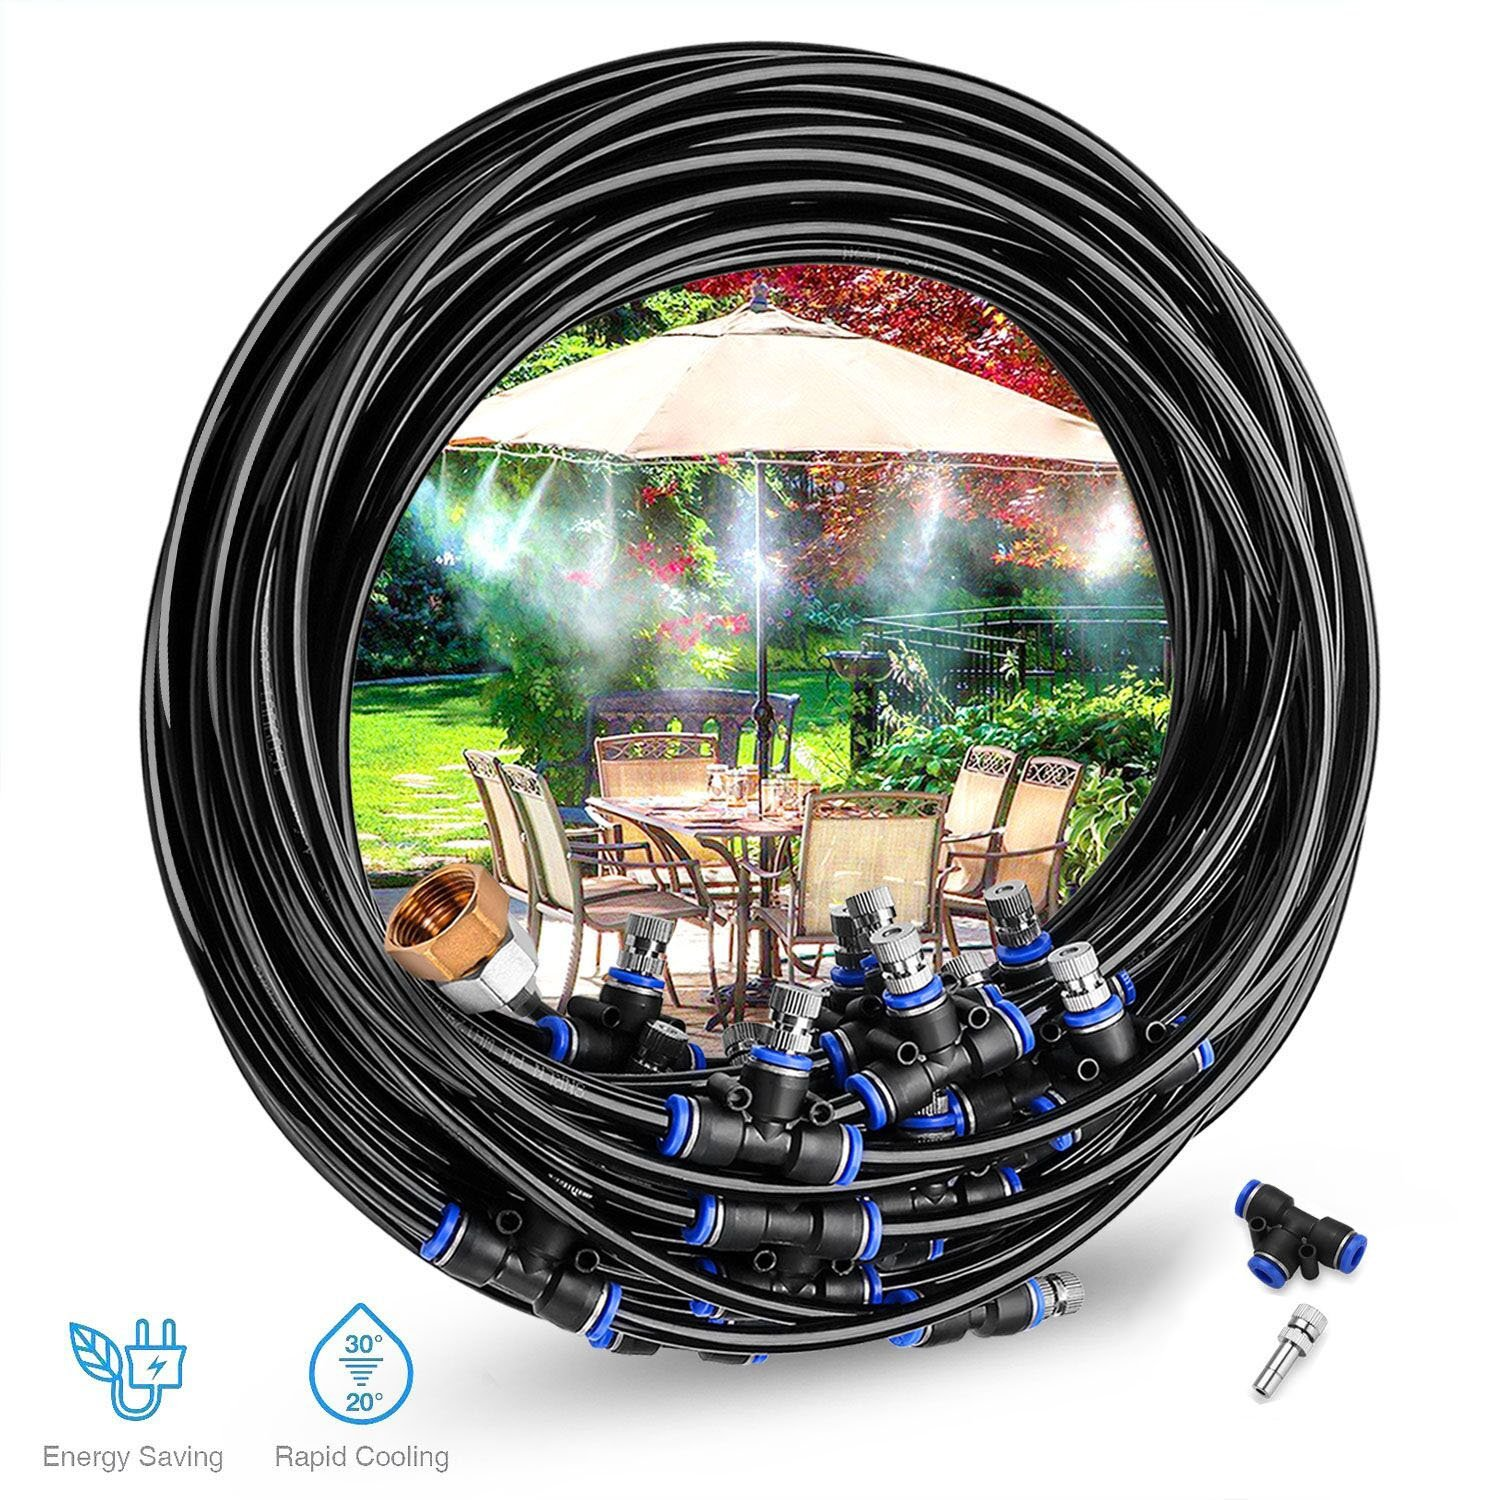 Gesentur [Upgraded 2018] Misting Cooling System - 59ft(18M) Misting Line + 23 Metal Mist Nozzles + a Brass Adapter(3/4) for Outdoor Patio Garden Home Irrigation Trampoline